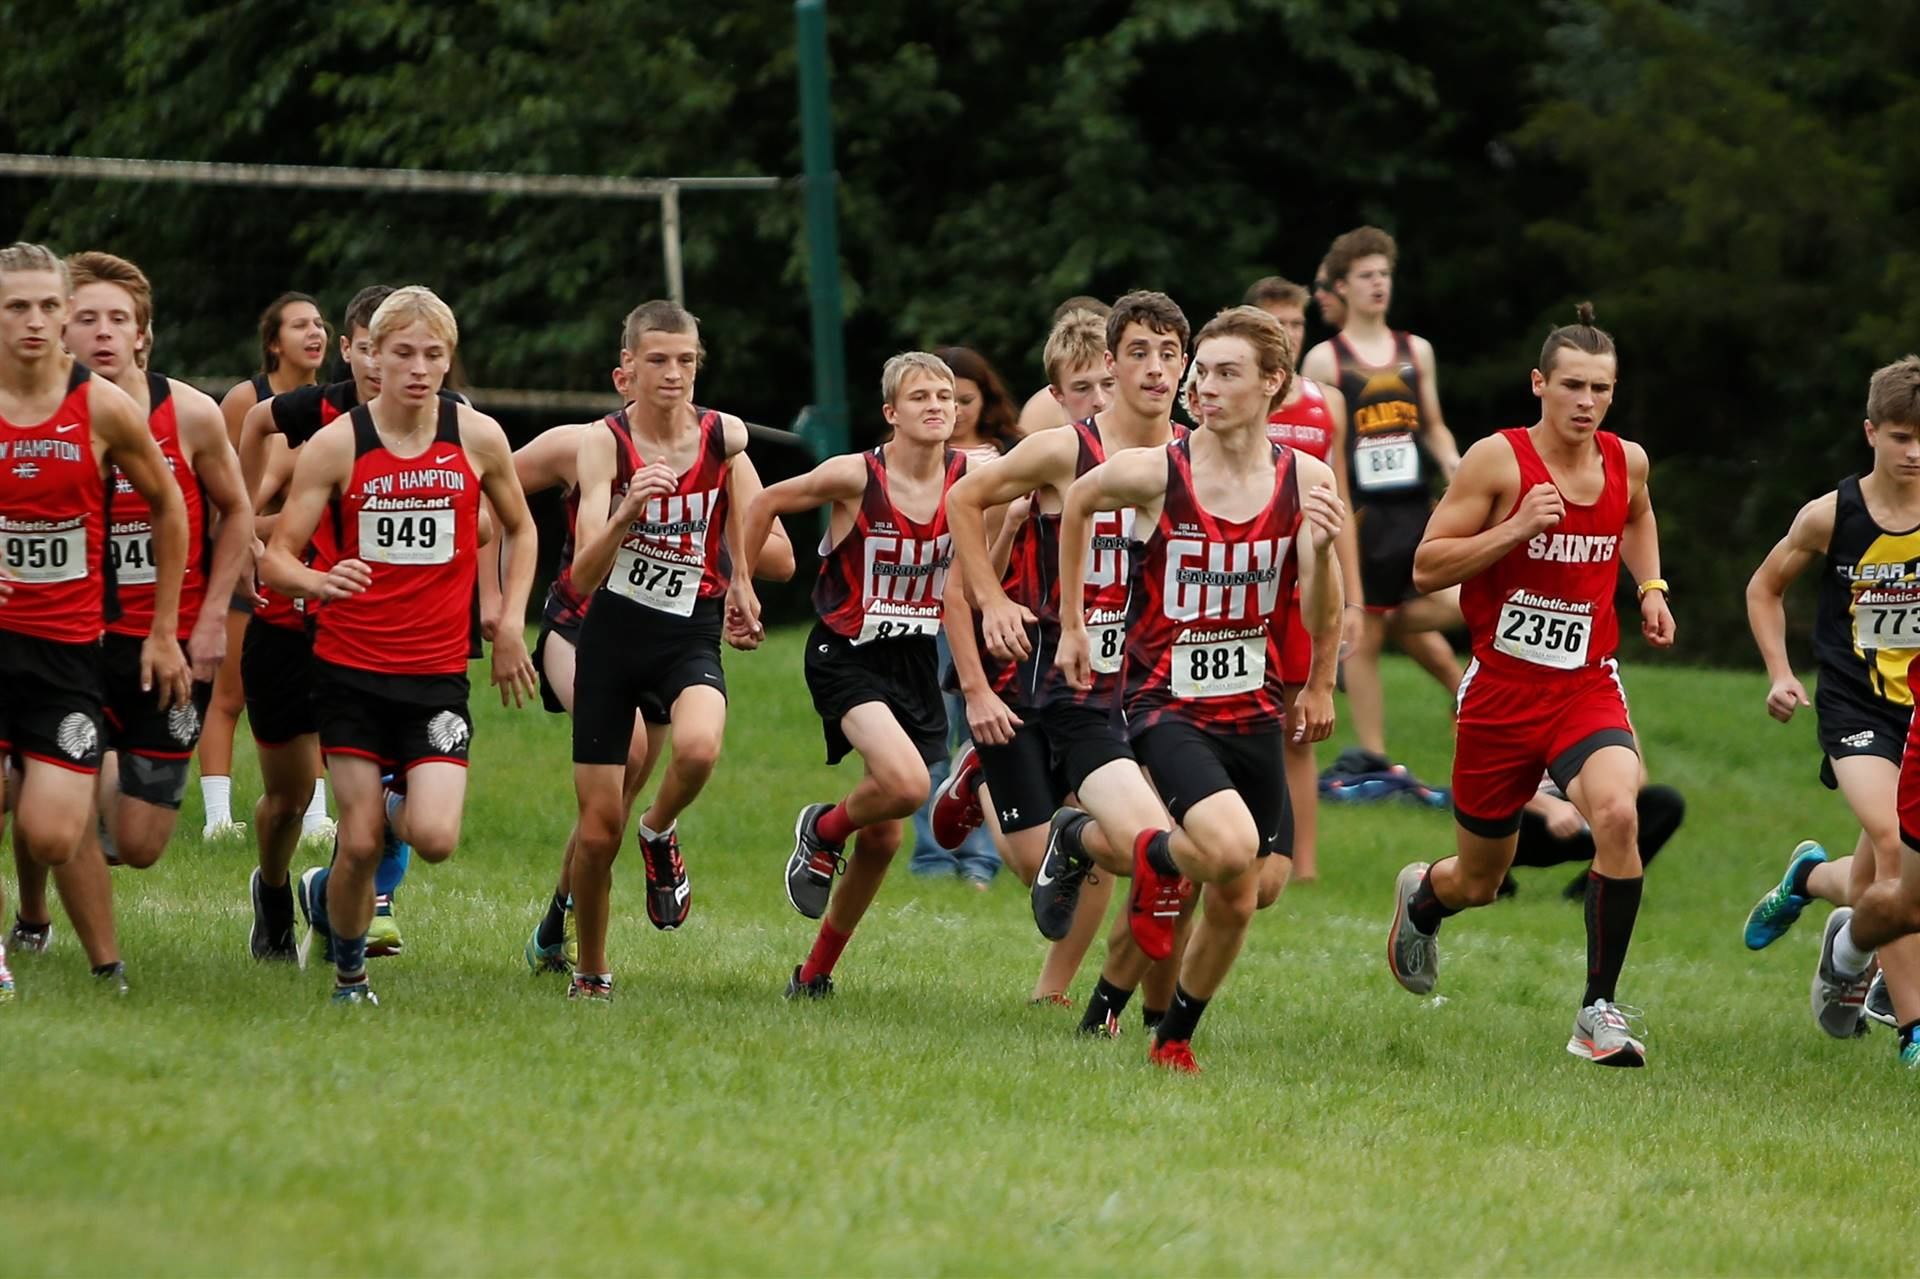 Several cross country runners beginning the race